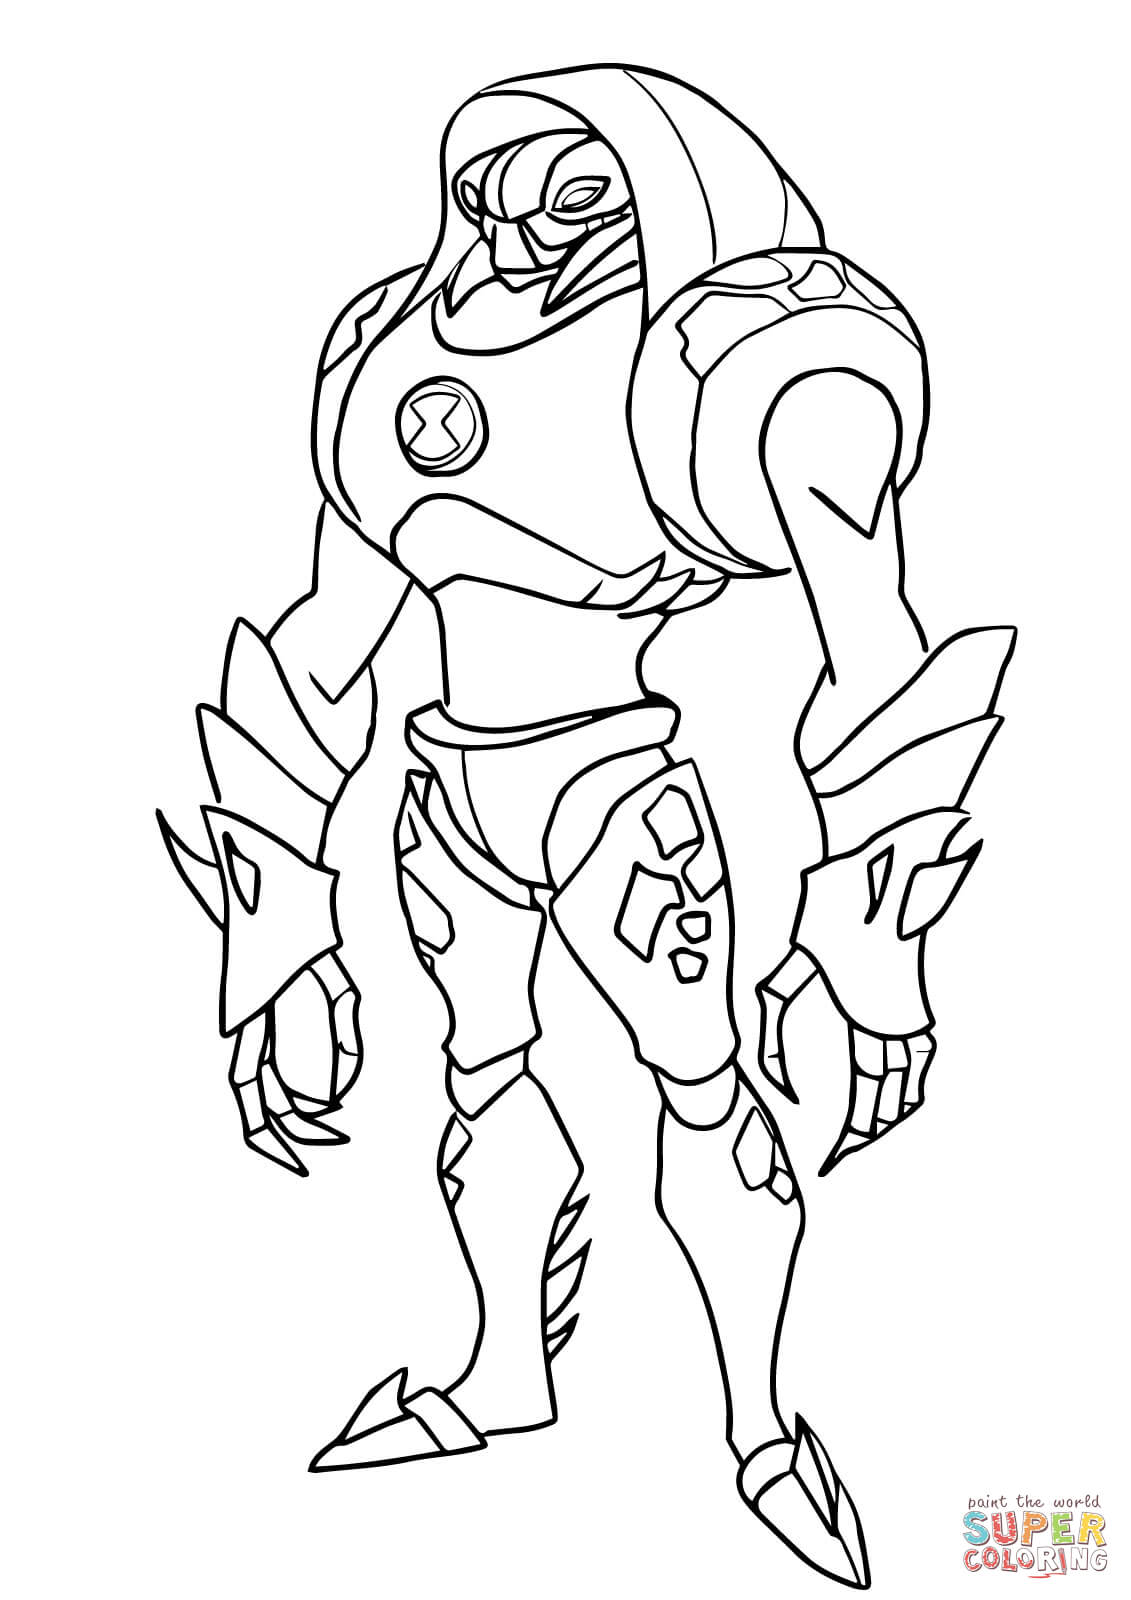 Ben 10 Echo Echo Coloring Pages - Coloring Home